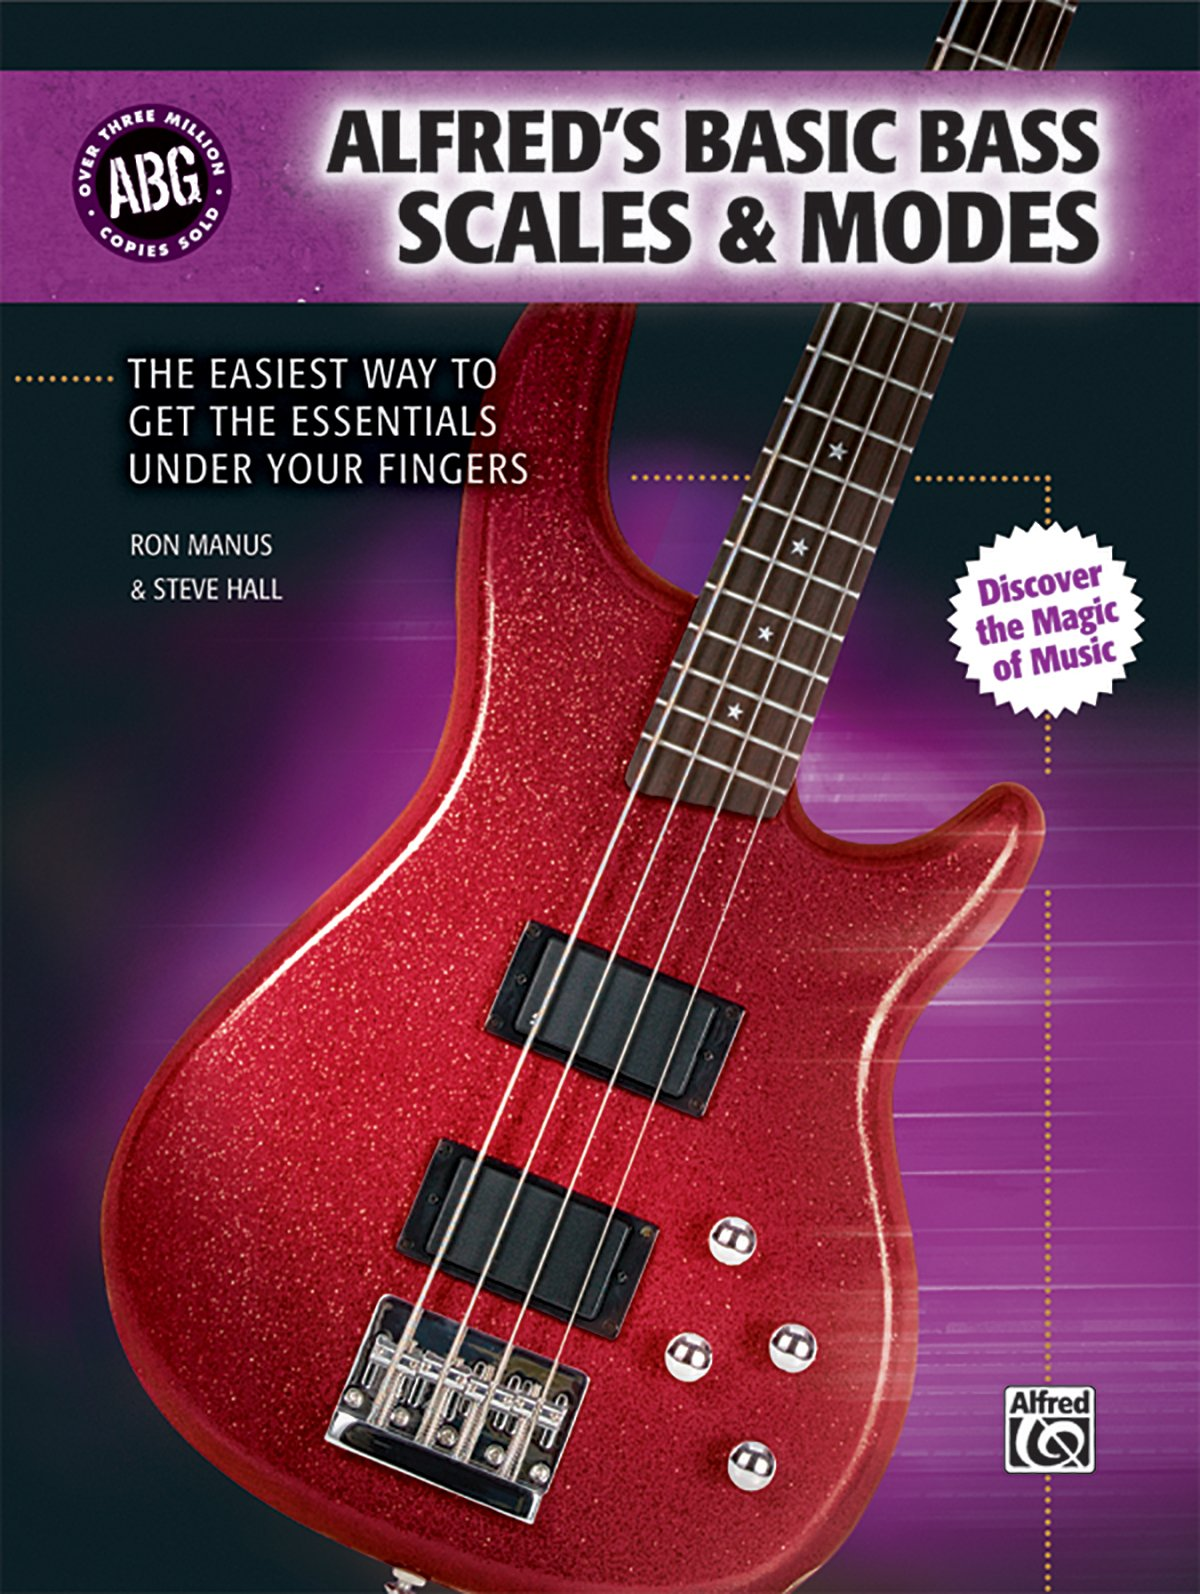 AlfredS Basic Bass Scales & Modes: The Easiest Way to Get ...